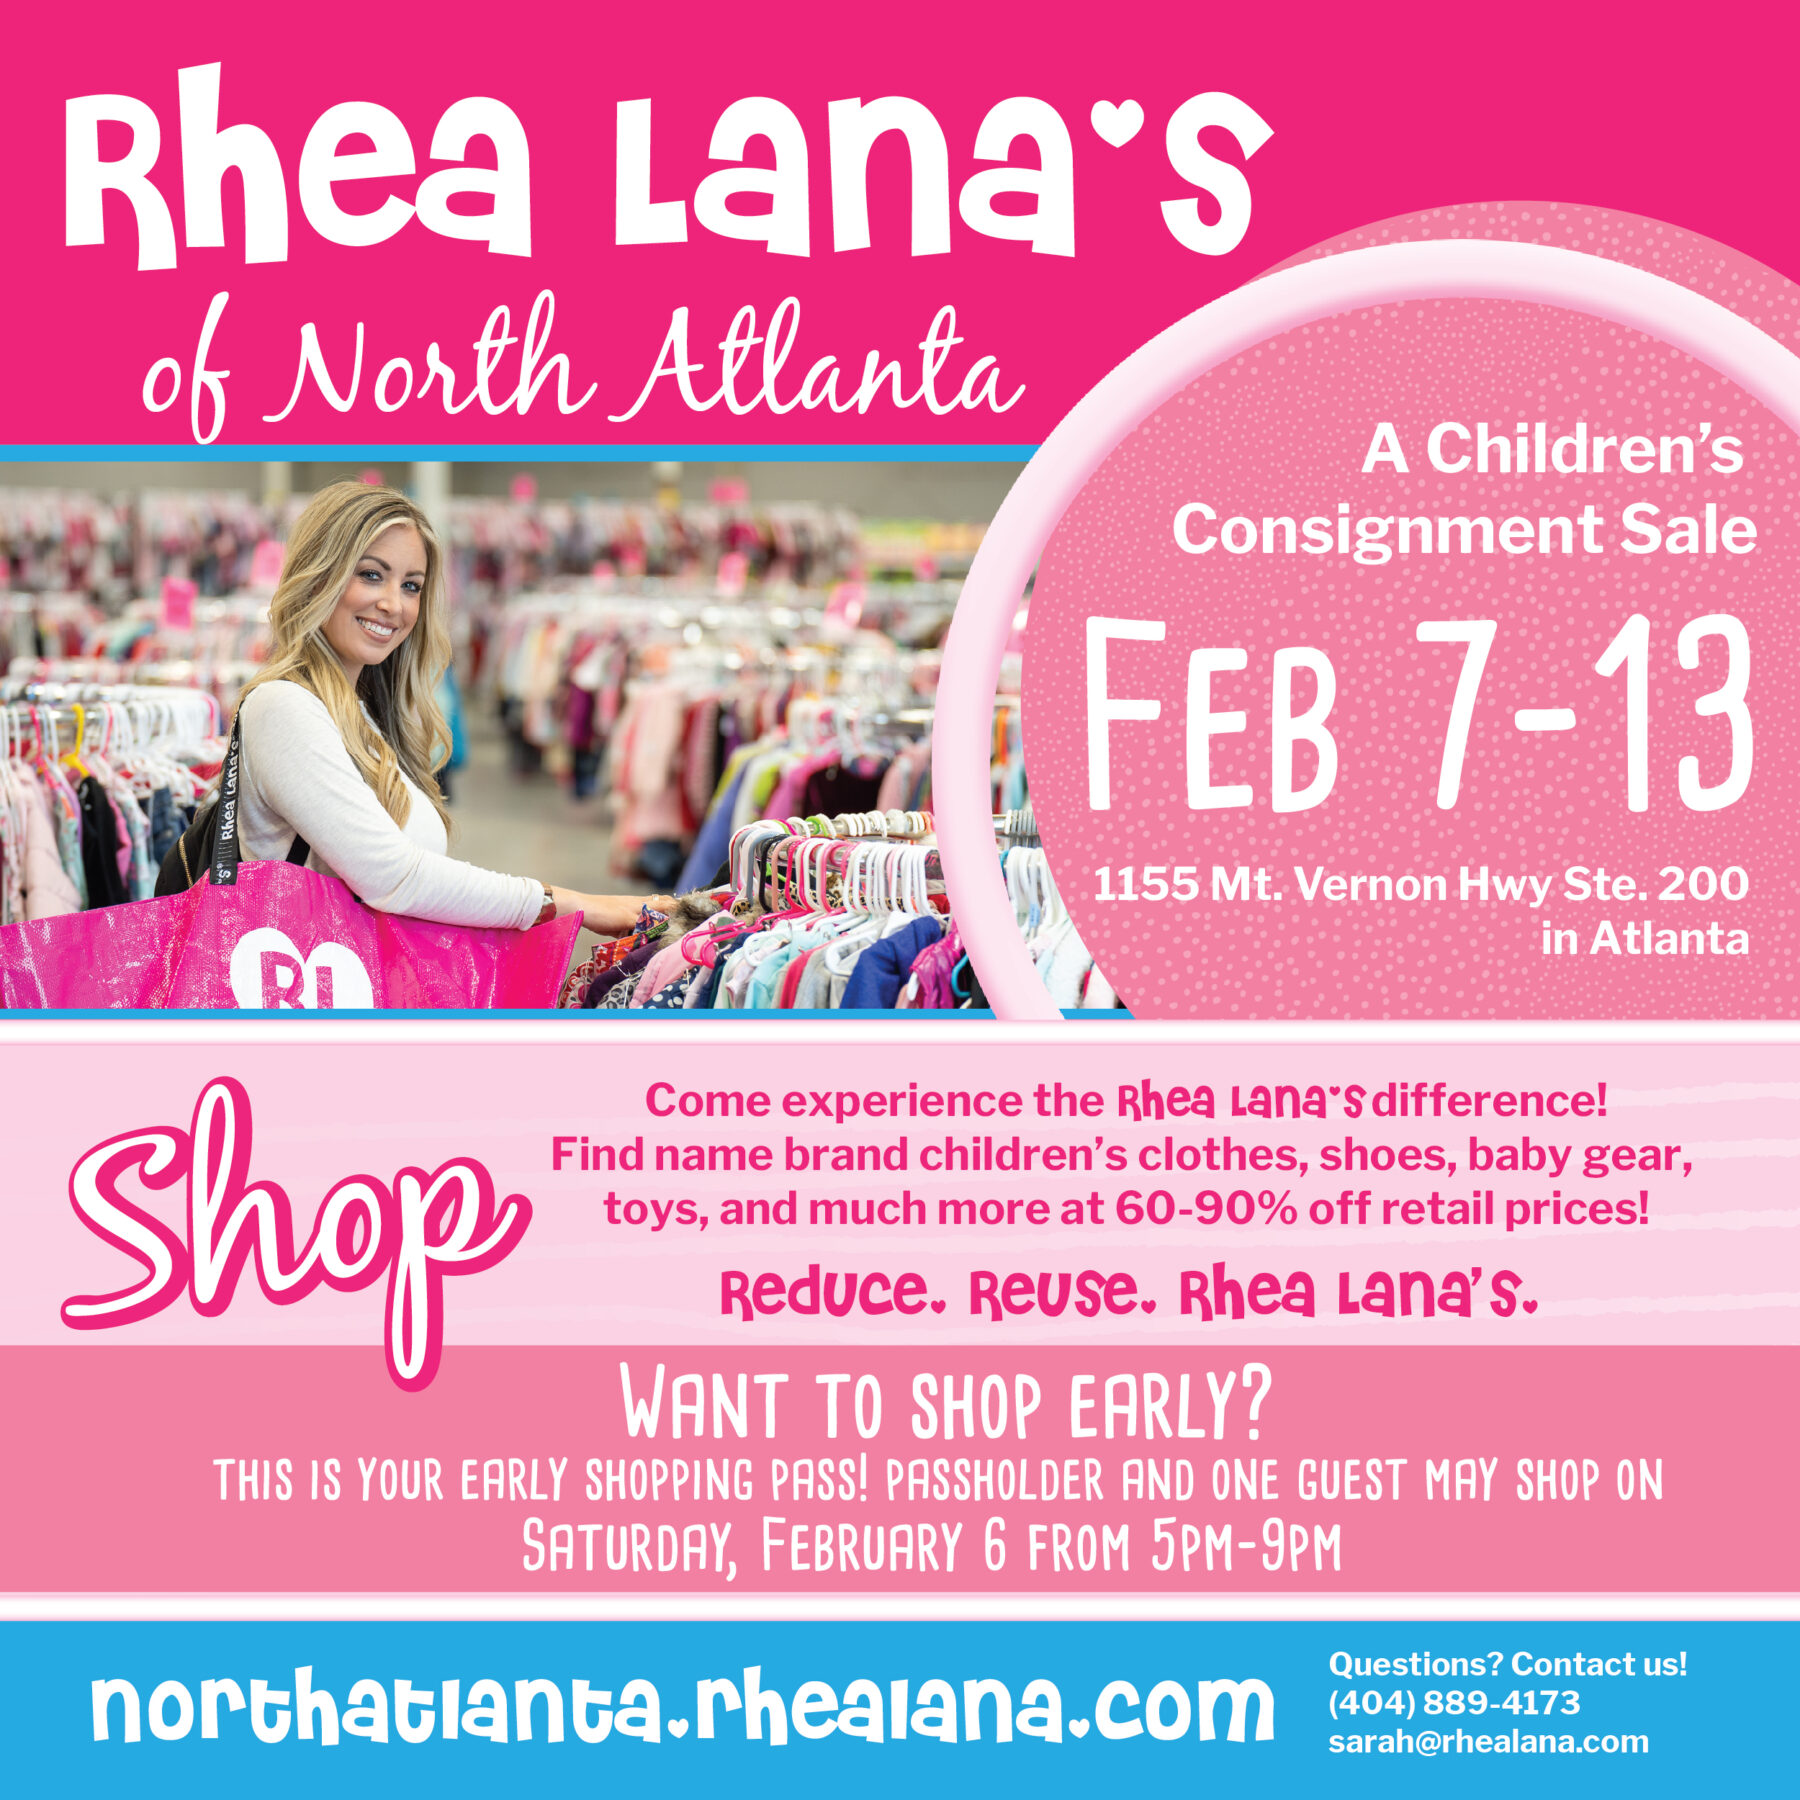 Rhea Lana's Children's Consignment of North Atlanta